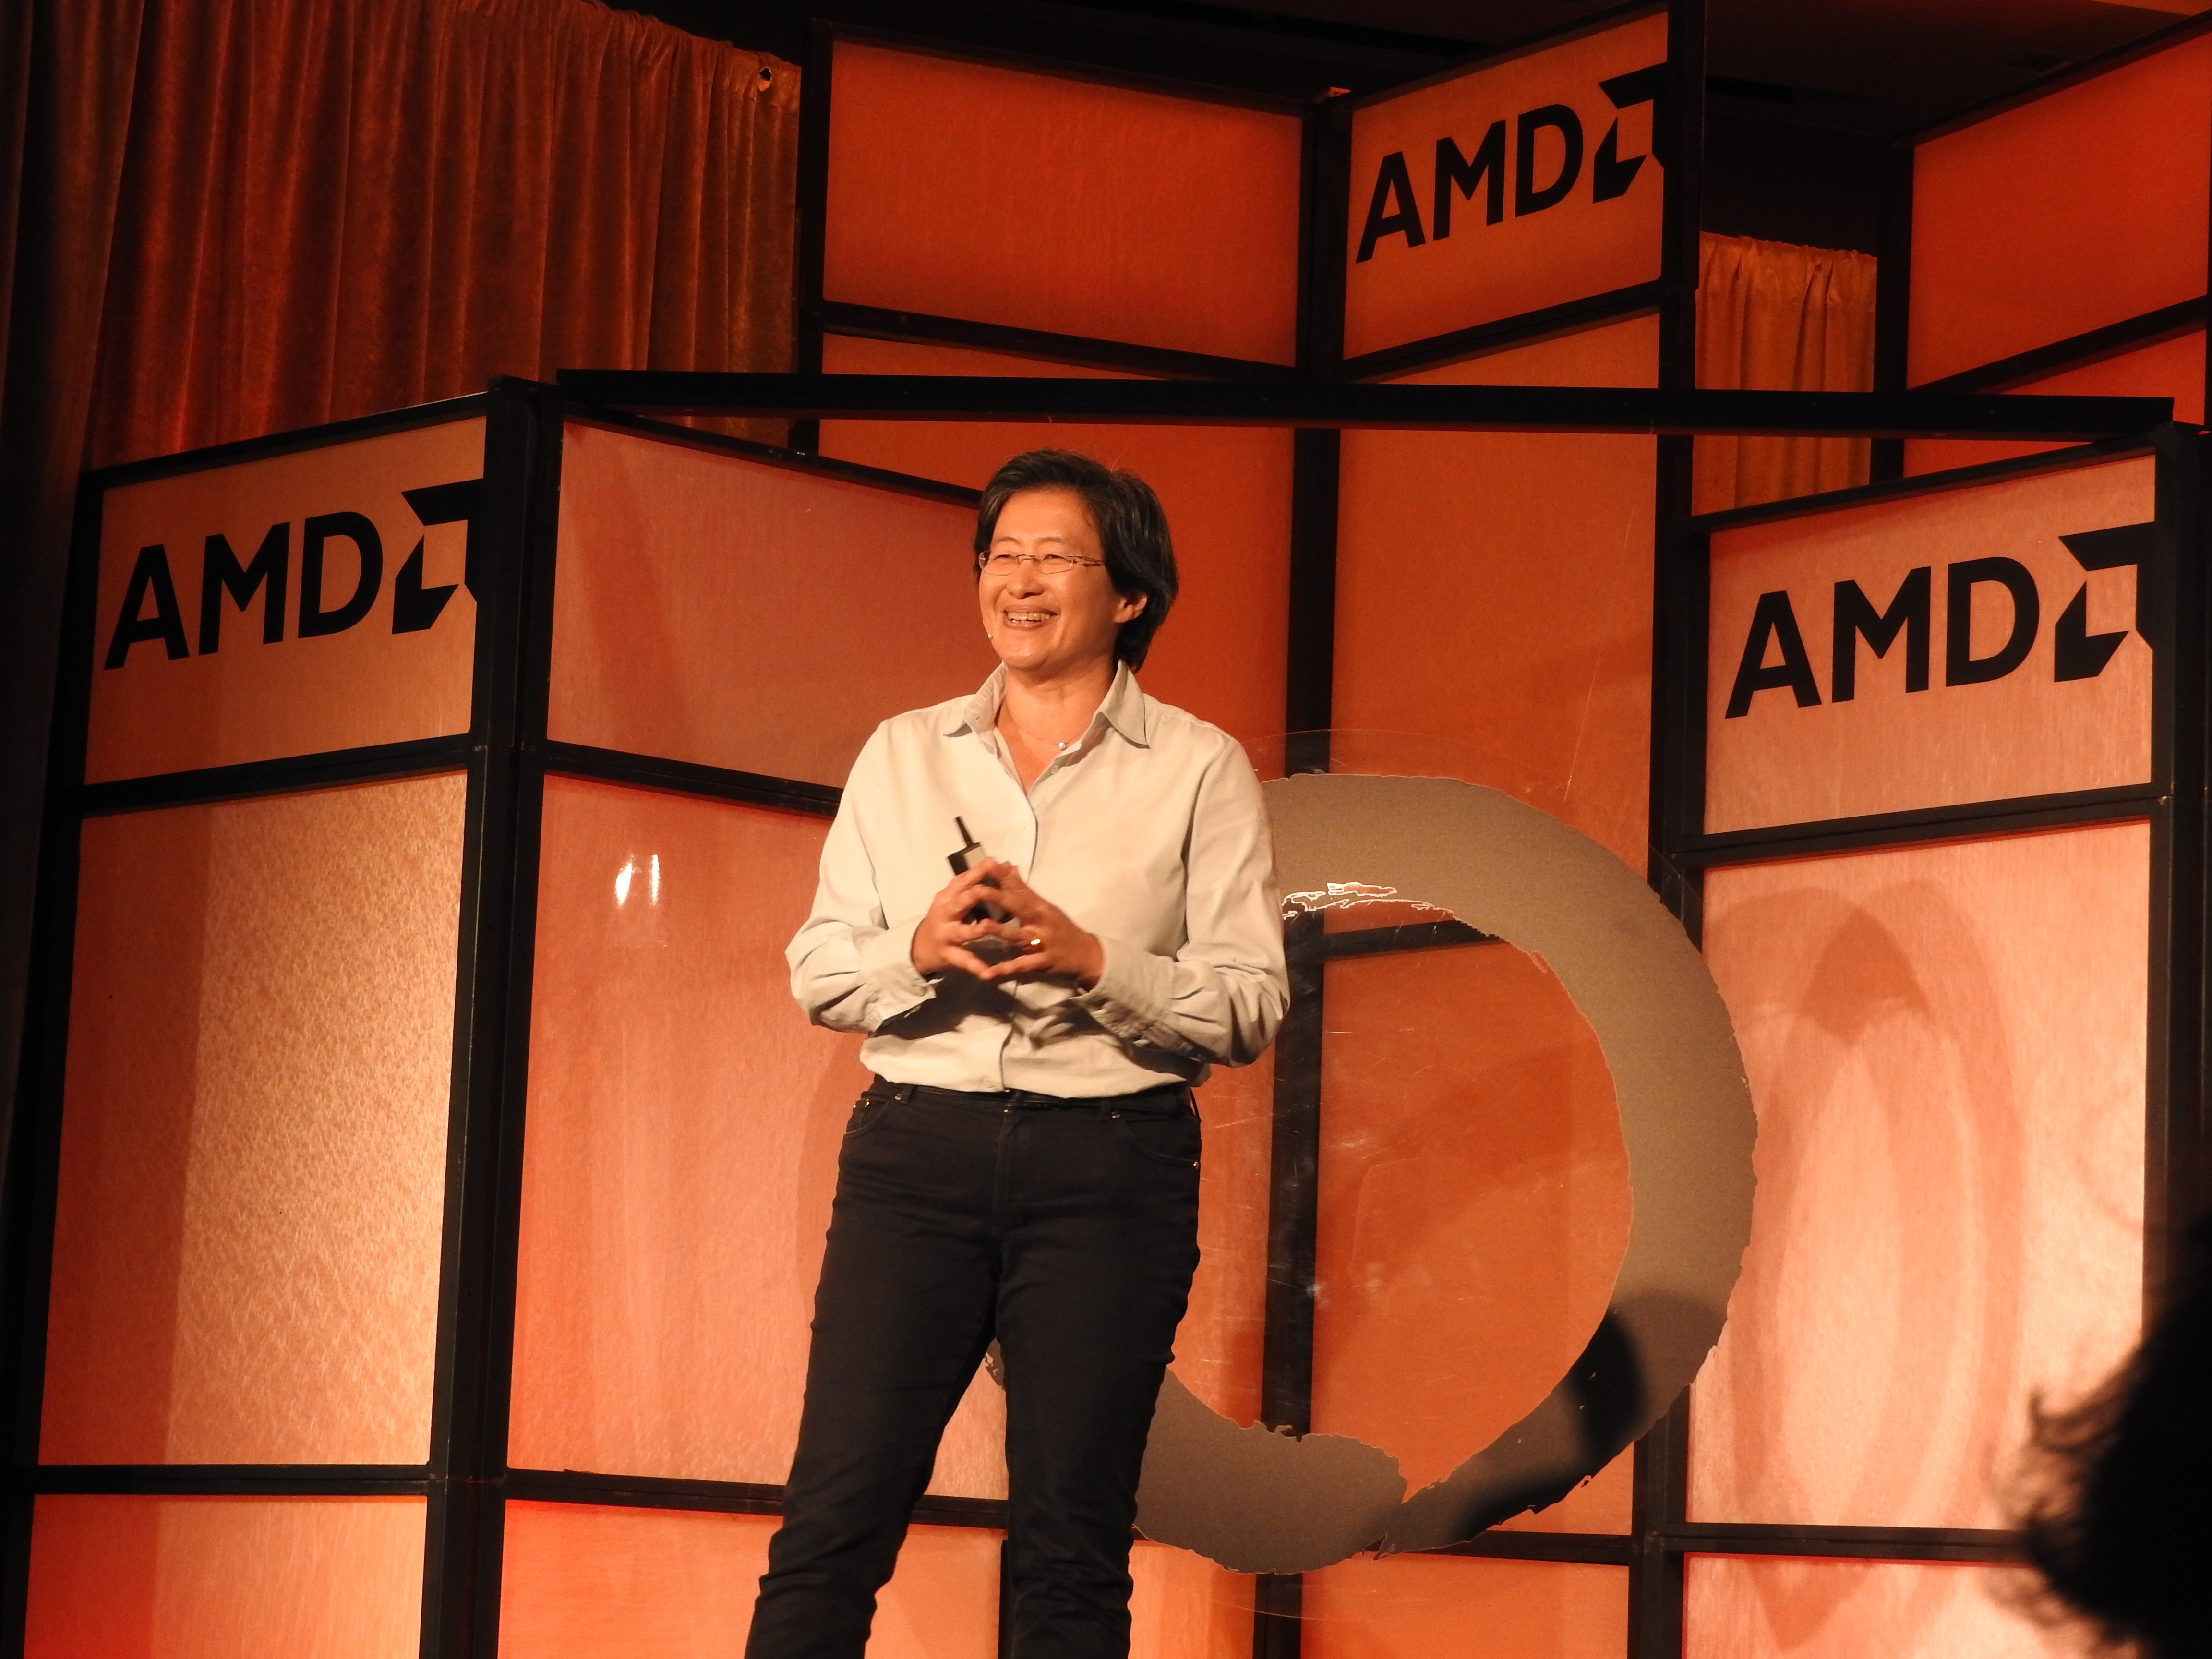 Lisa Su, CEO of Advanced Micro Devices, talking about Zen.